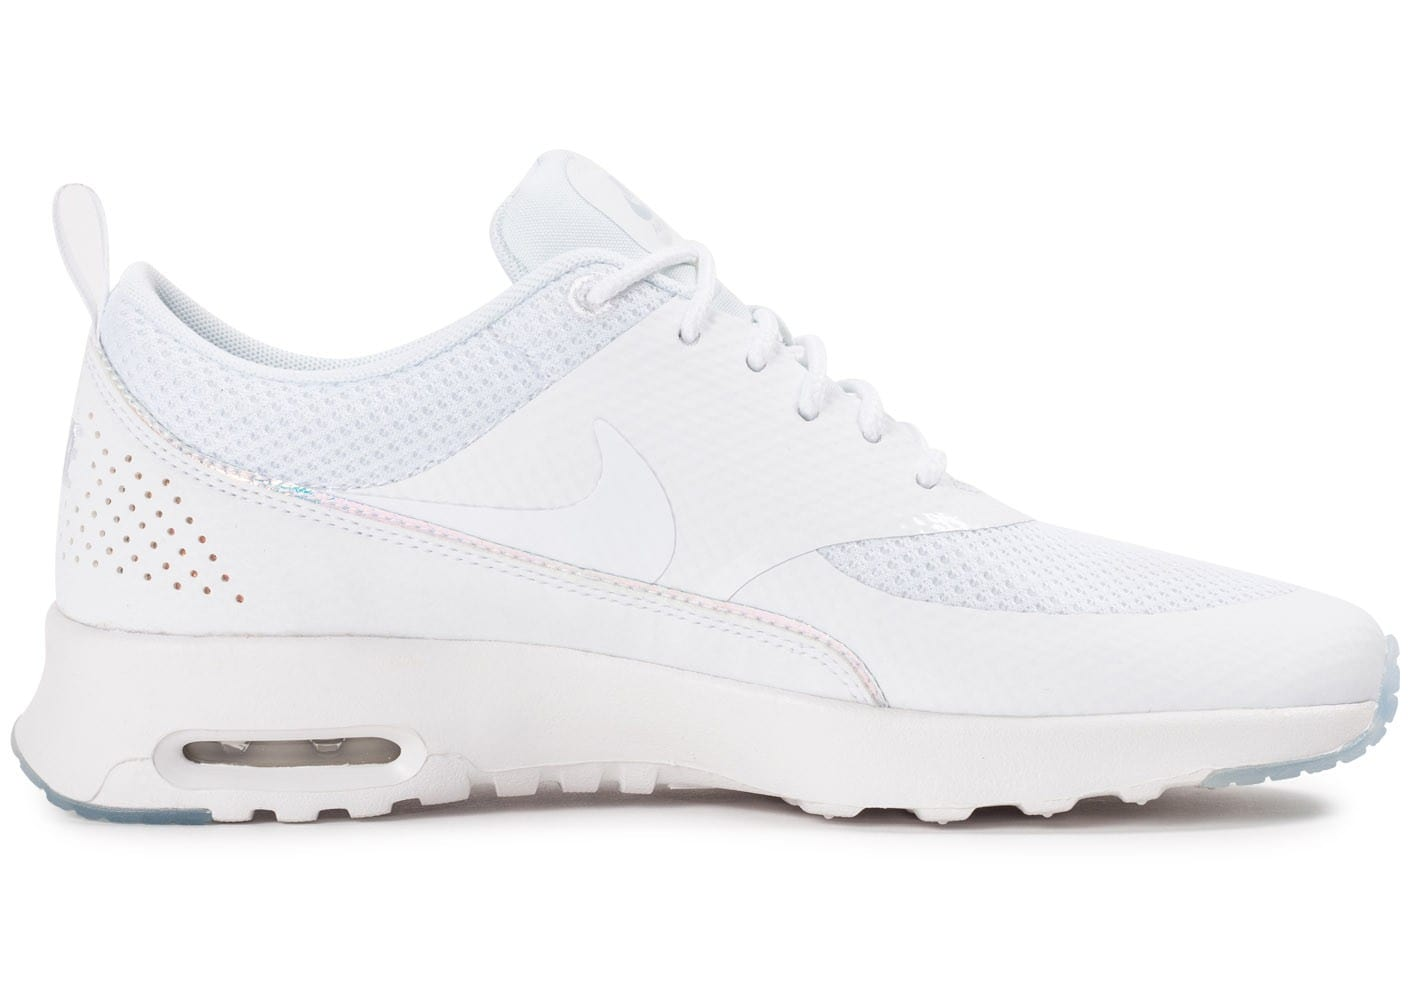 air max thea chaussures blanche. Black Bedroom Furniture Sets. Home Design Ideas